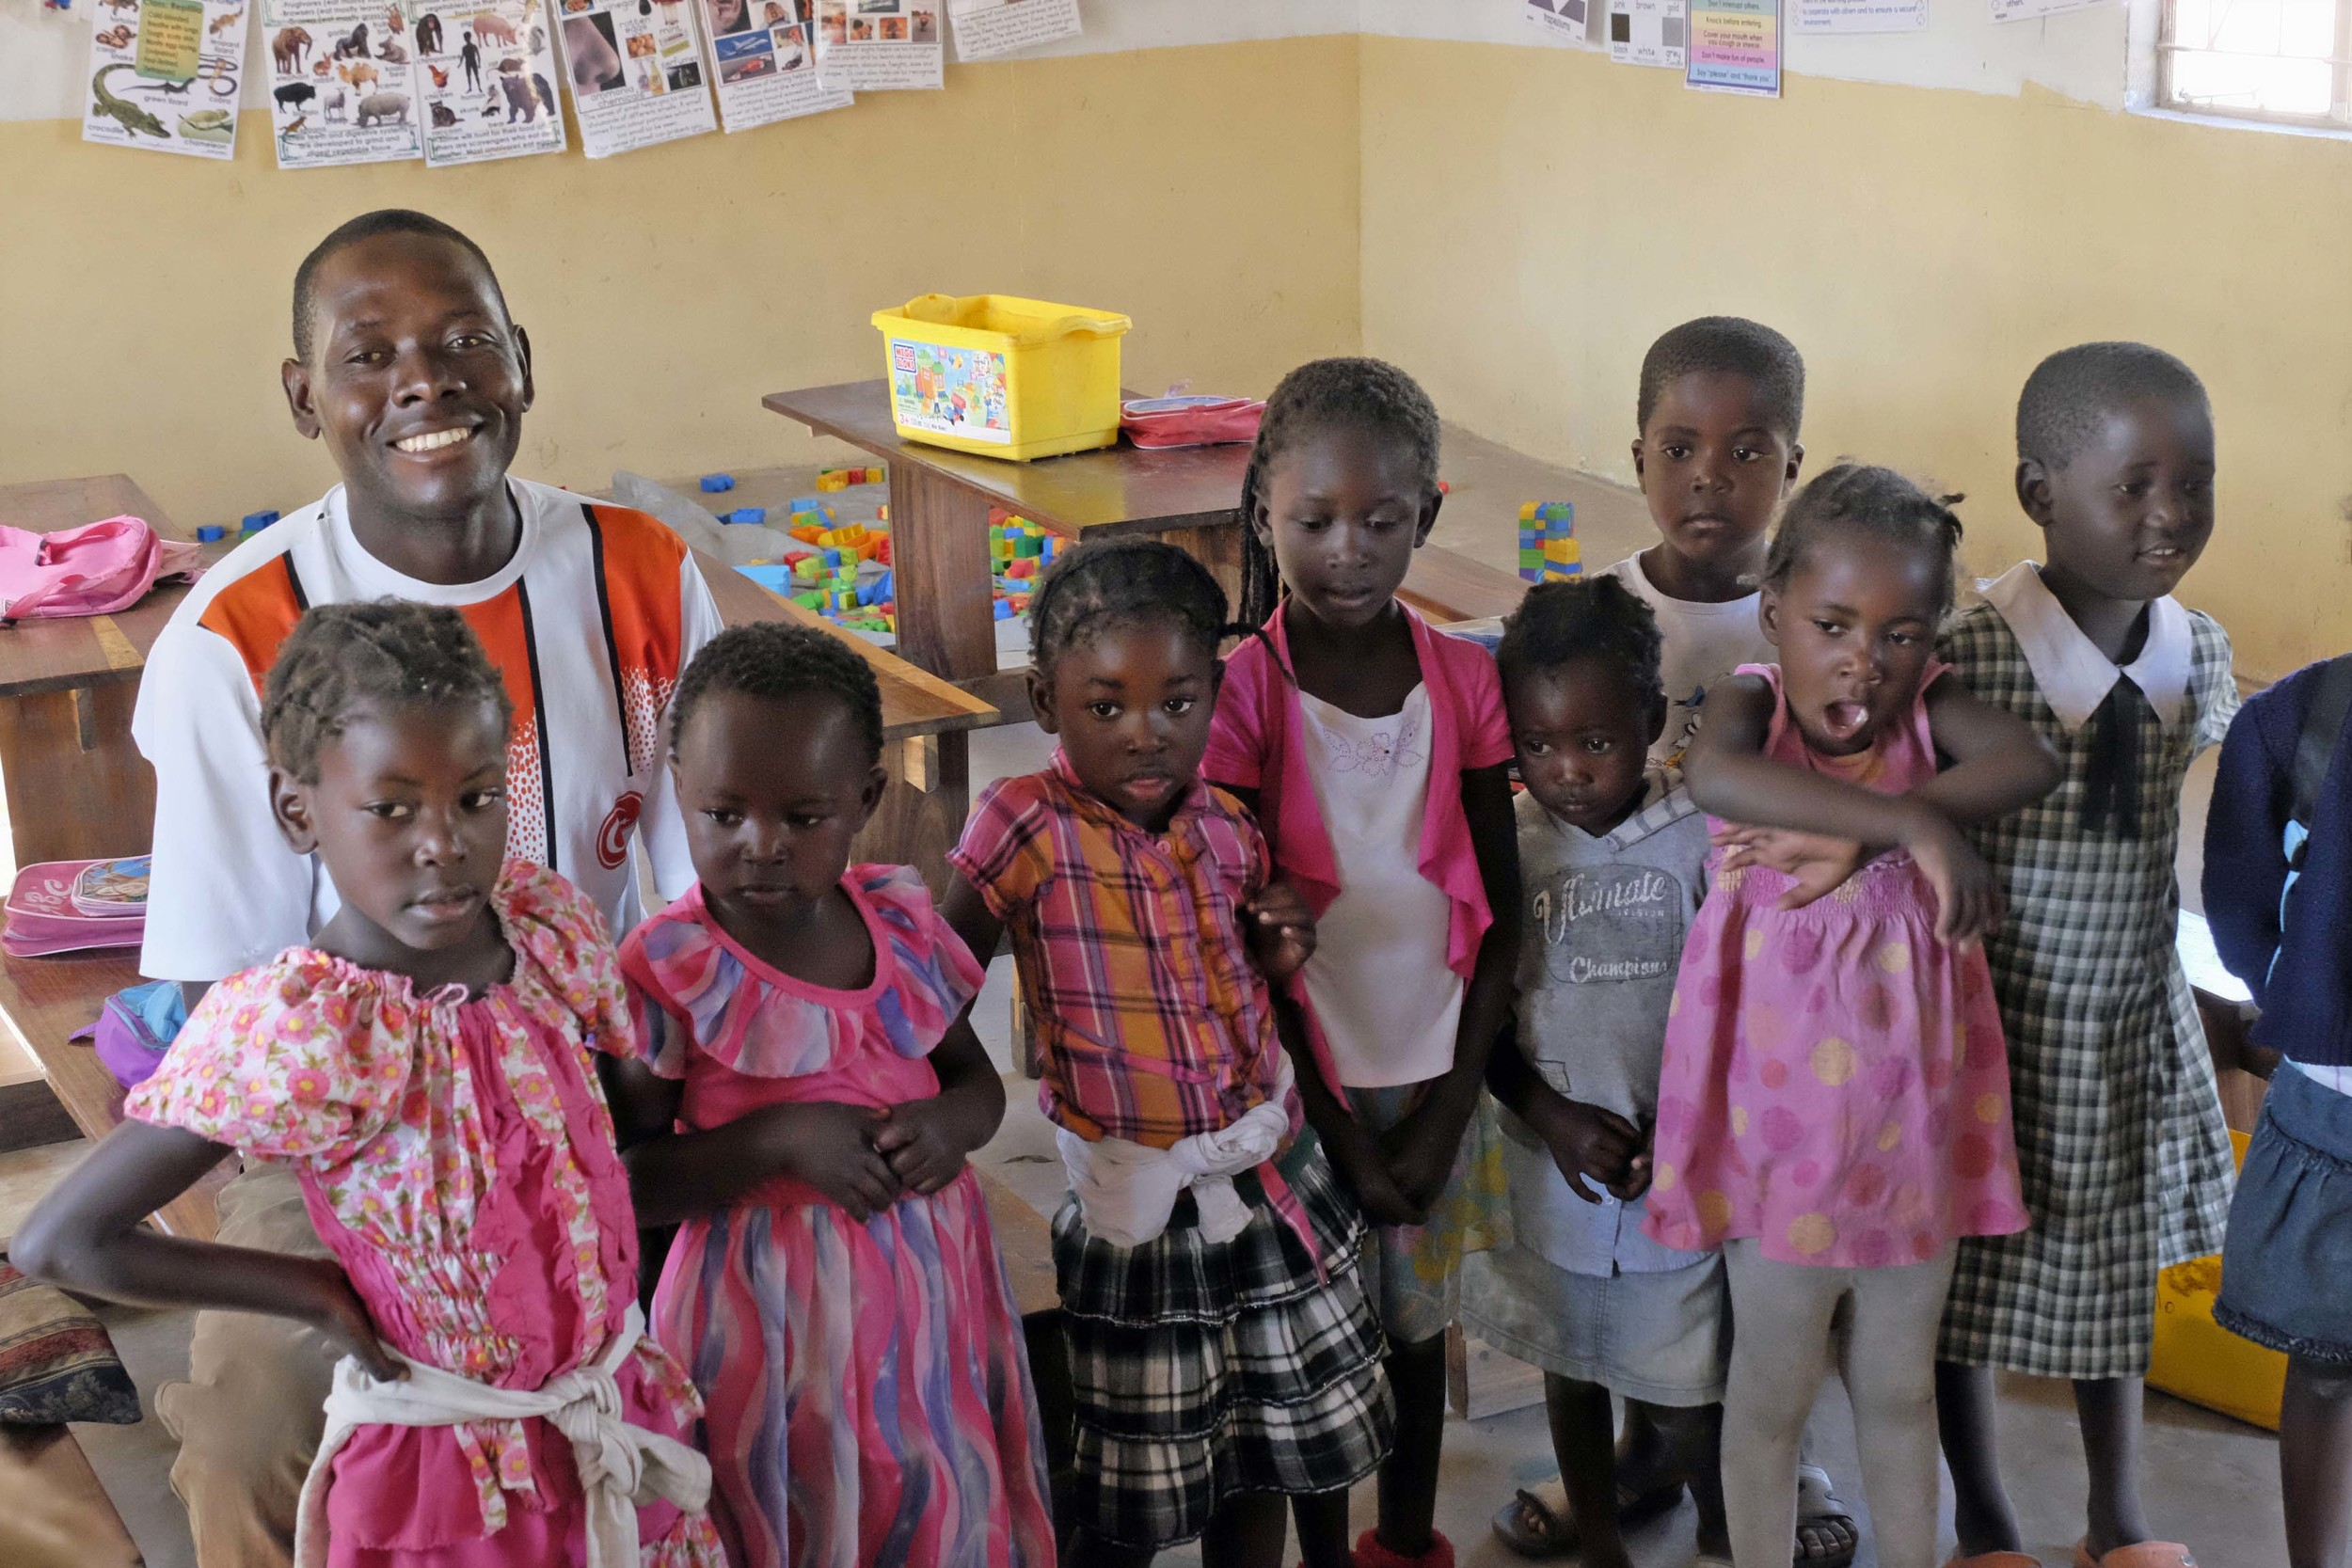 Lemmi and some of his children, the future leaders of Zambia!